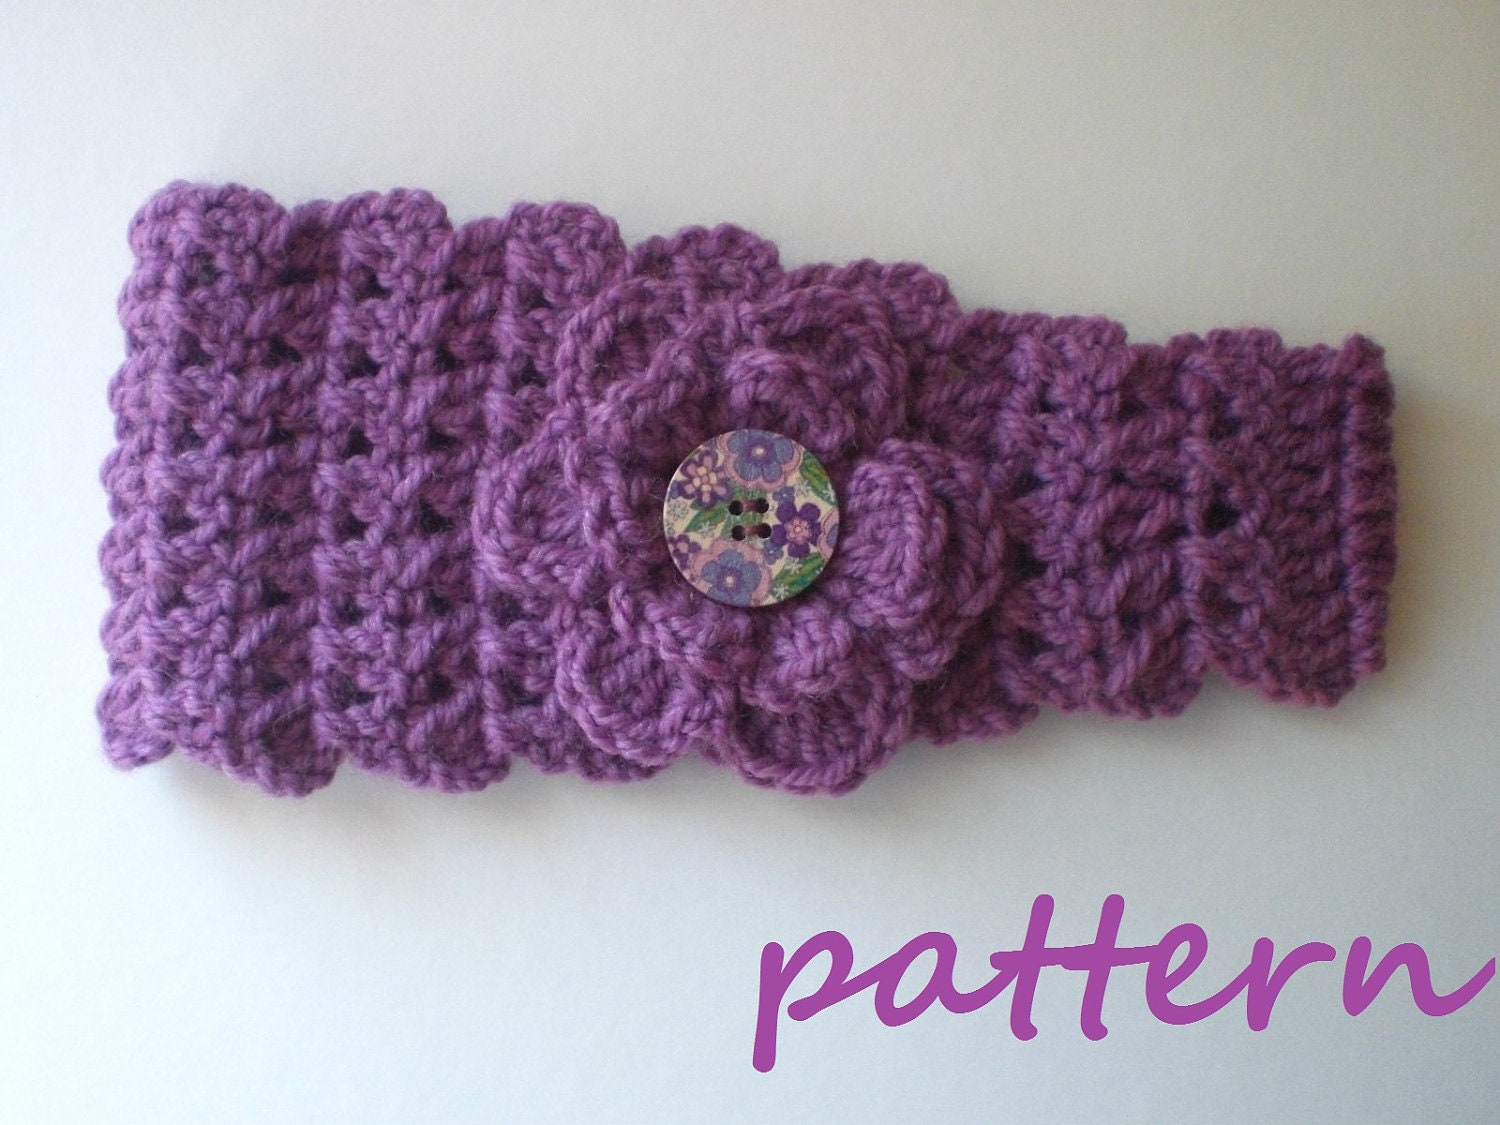 Free Crochet Pattern Headband Ear Warmer Button : Crochet Headband Earwarmer Pattern. PDF 028.